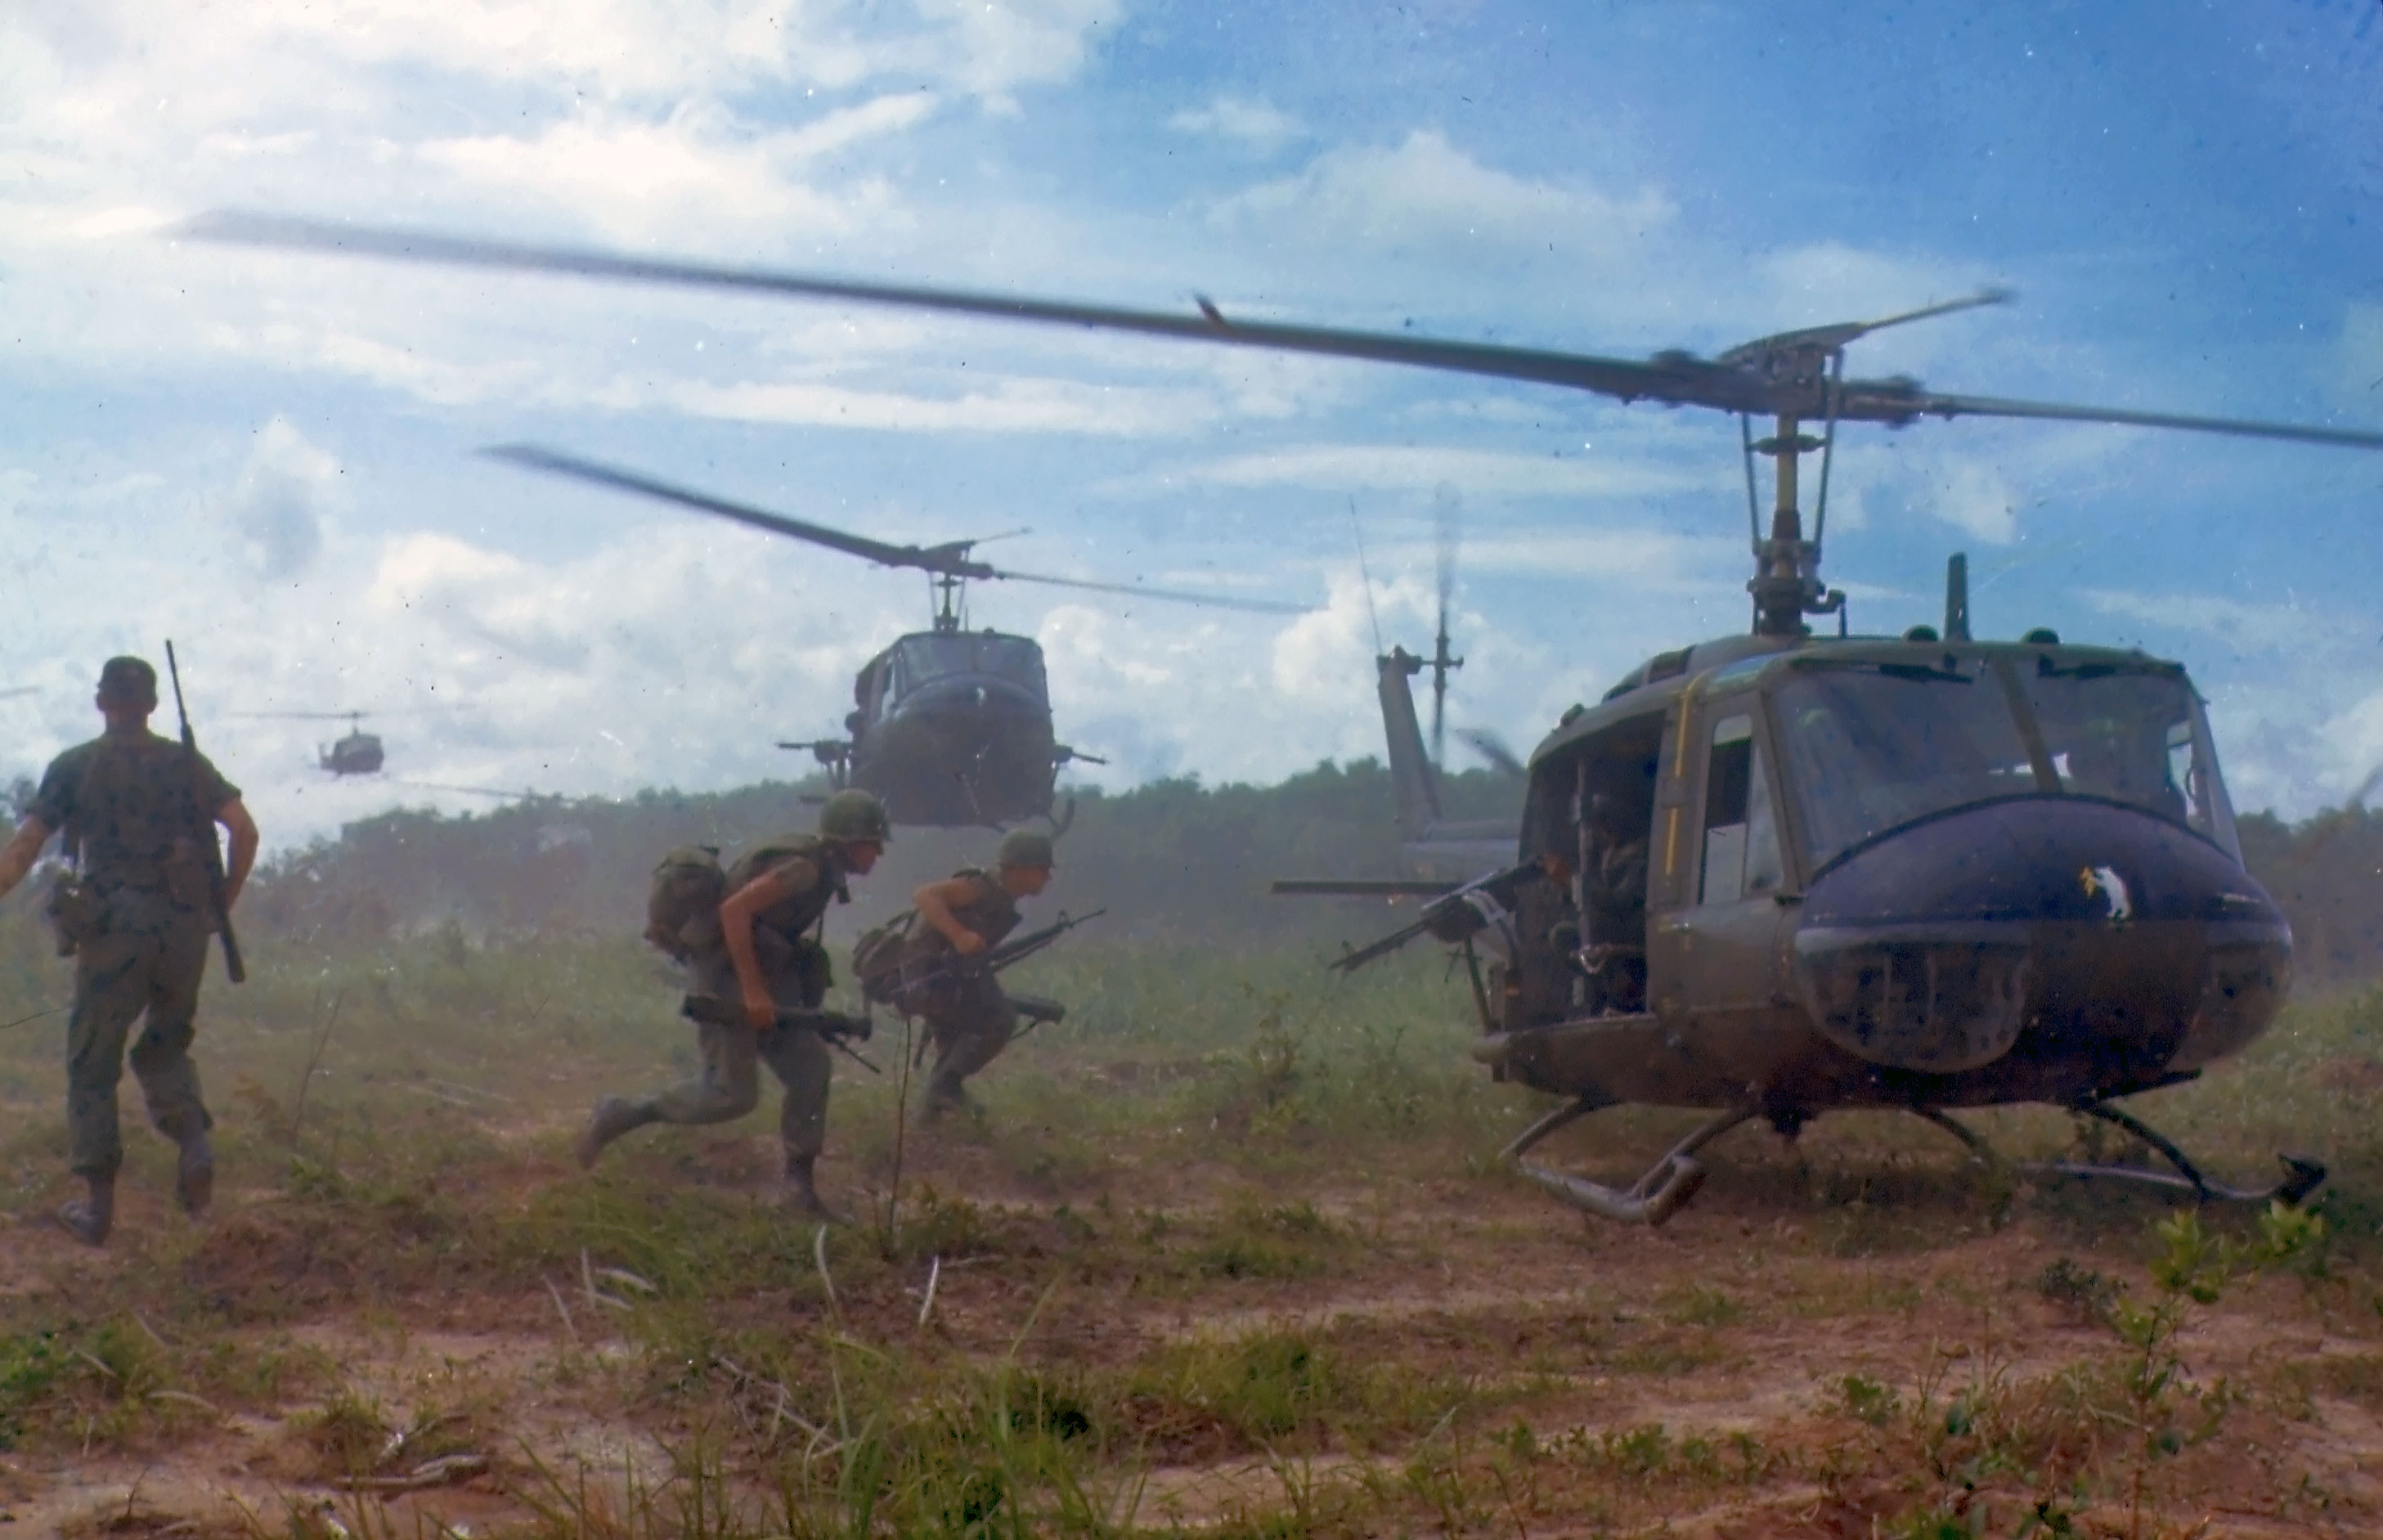 U.S. Army Bell UH-1D helicopters airlift members of the 2nd Battalion, 14th Infantry Regiment from the Filhol Rubber Plantation area to a new staging area, during Operation